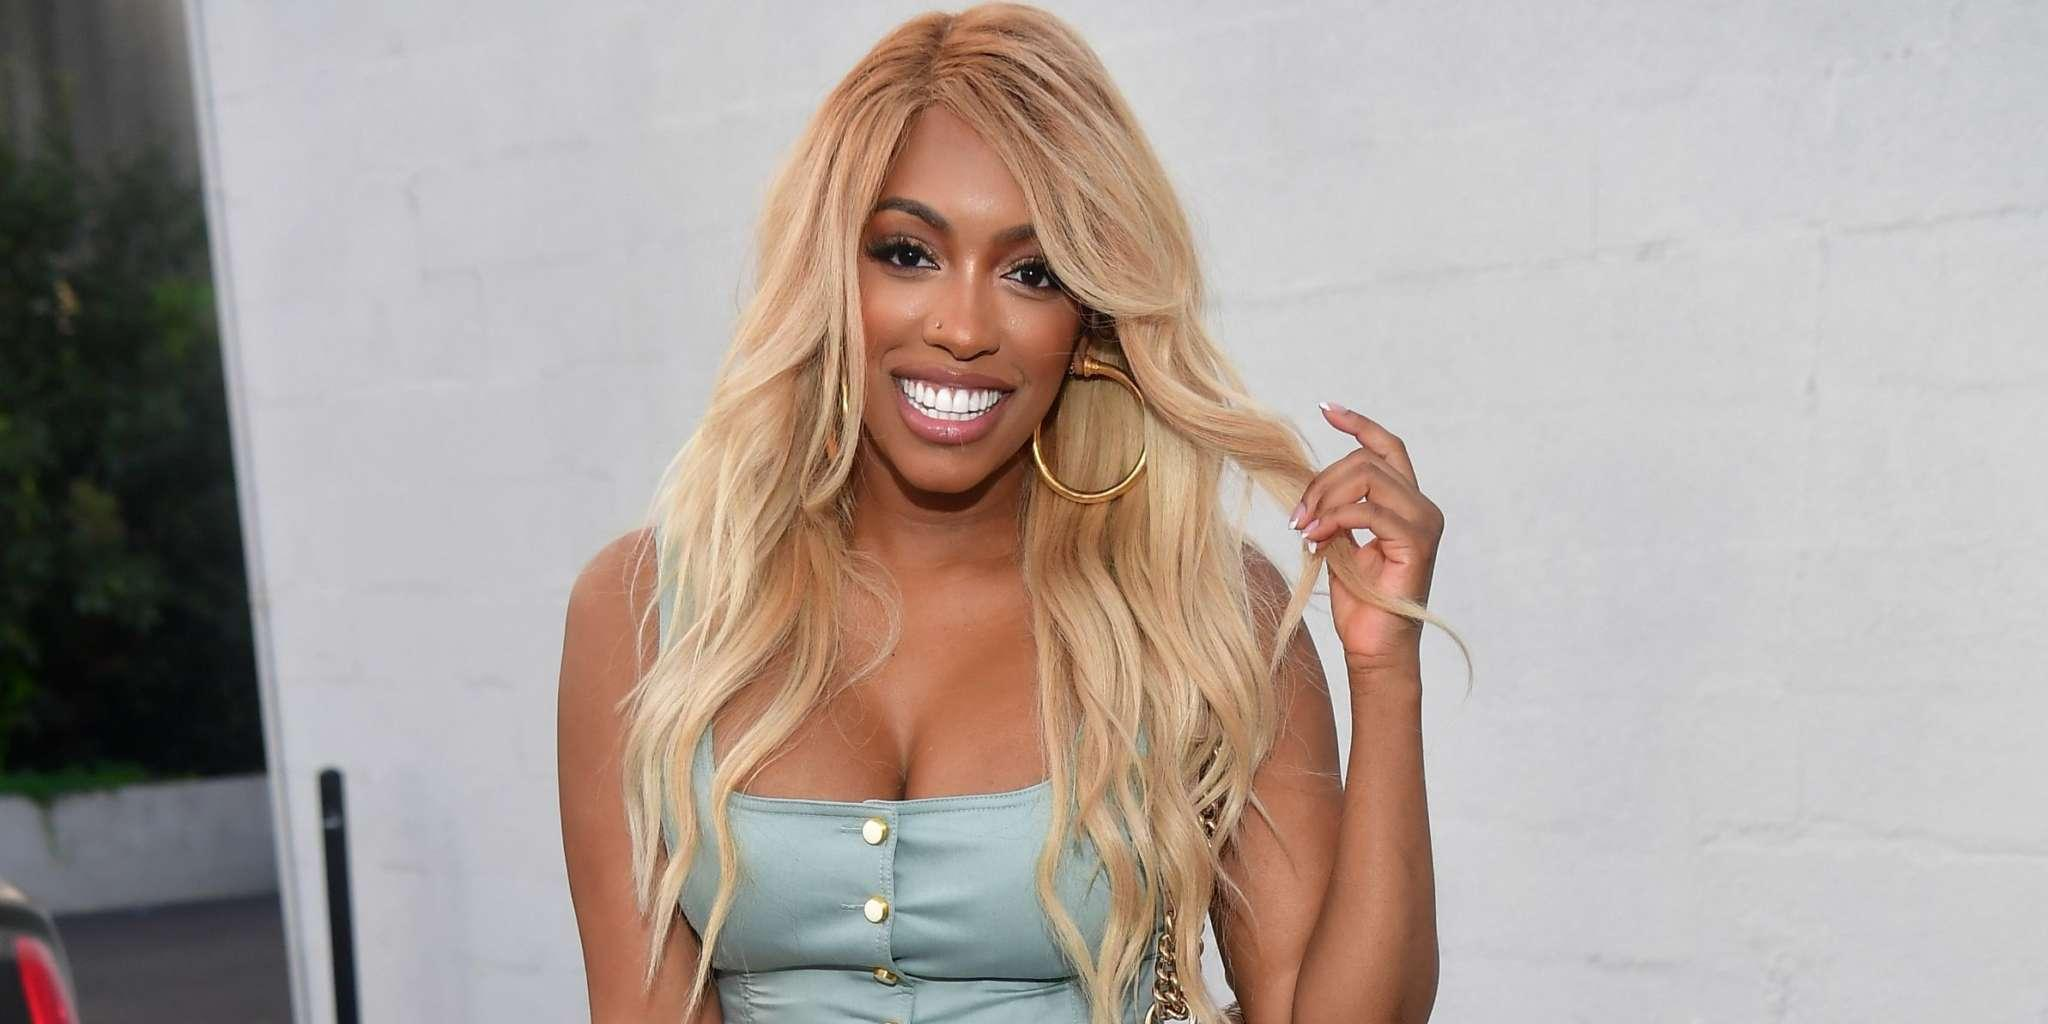 Porsha Williams' Fans Are Happy After RHOA Aired Last Night: 'It Was Madness Without You, Ladies'